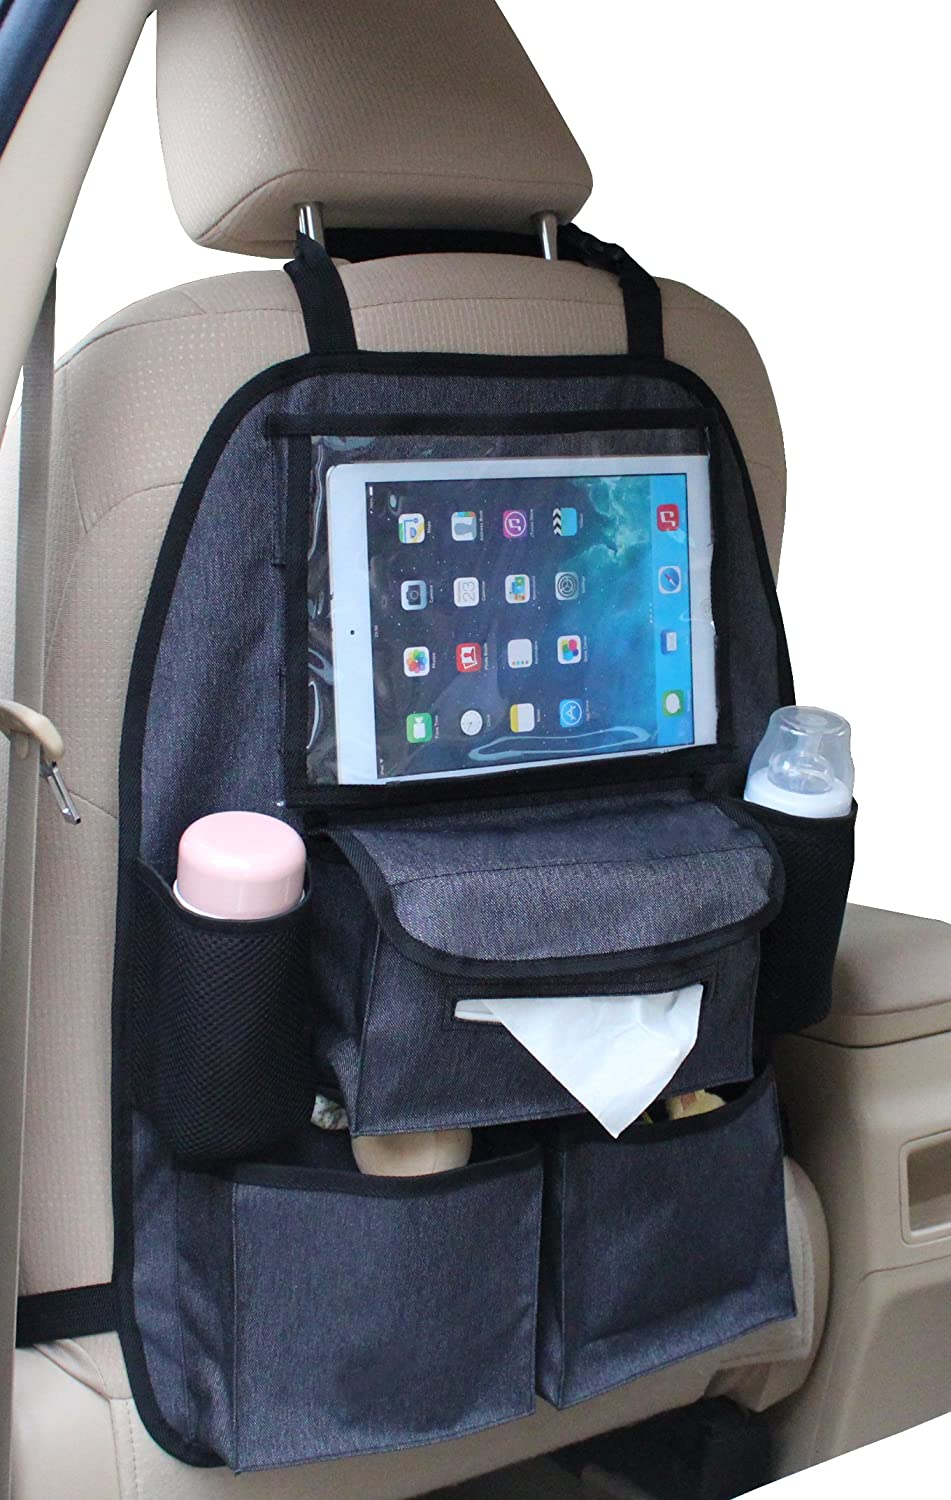 altabebe deluxe organisateur siege arriere de voiture avec poche pour tablette ebay. Black Bedroom Furniture Sets. Home Design Ideas